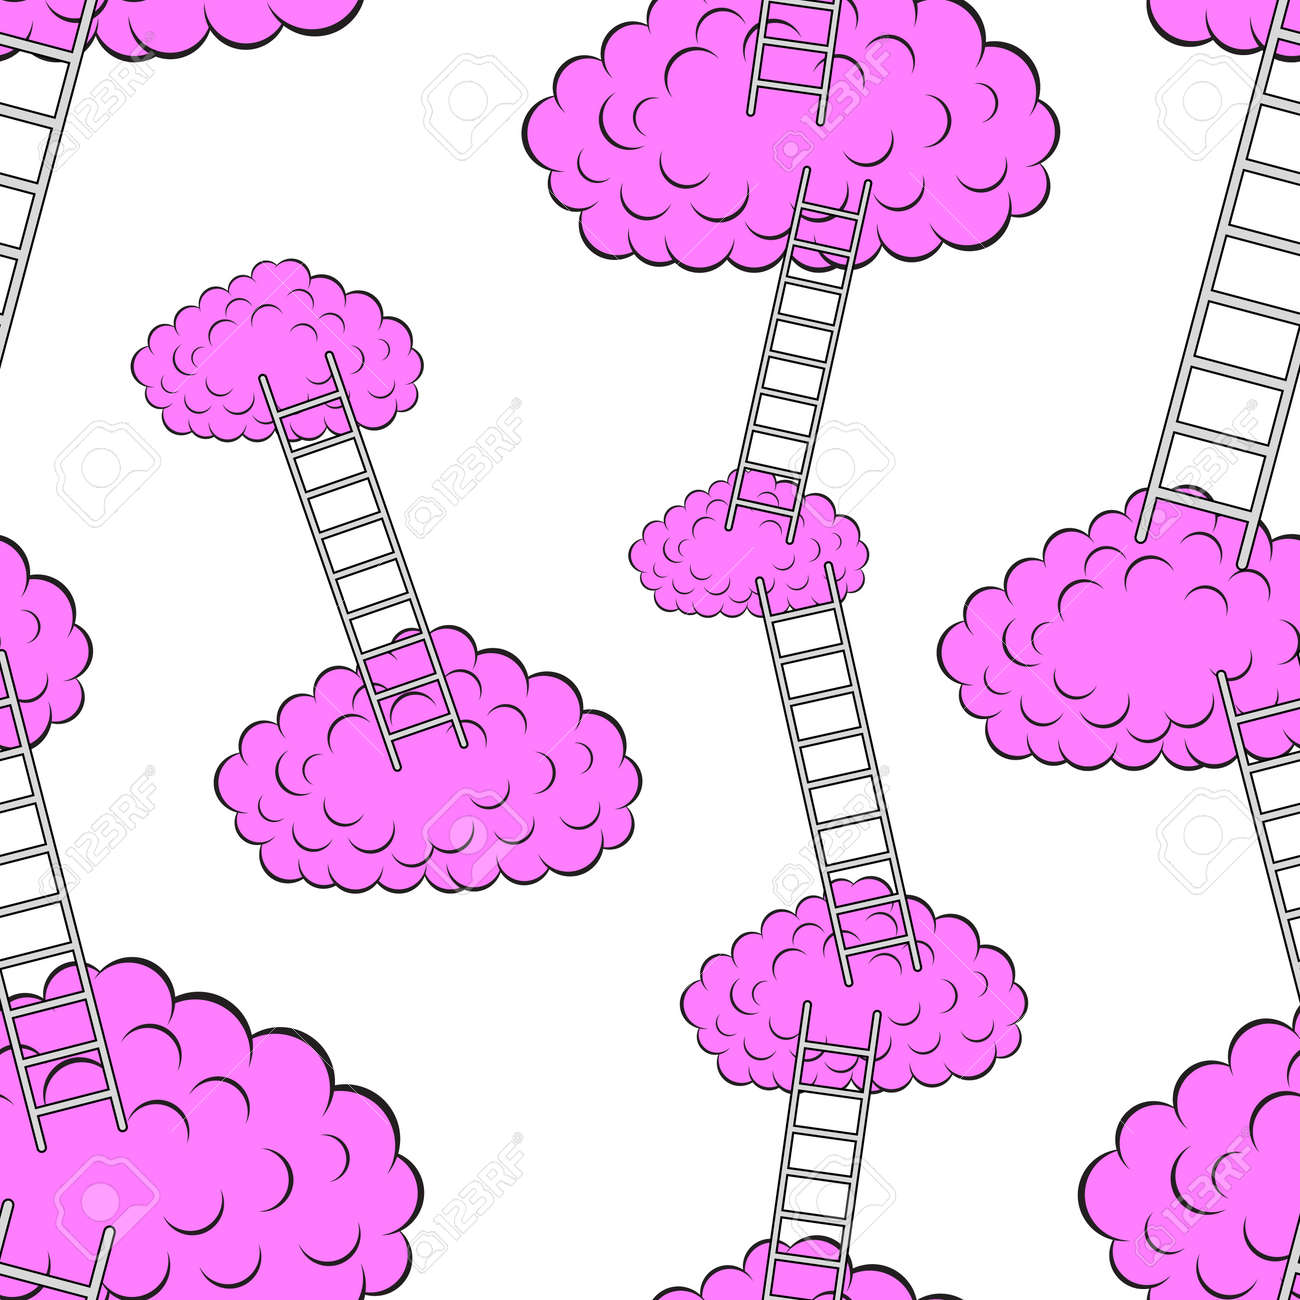 Clouds with stairs, seamless wallpaper, vector illustration Stock Vector - 16114291